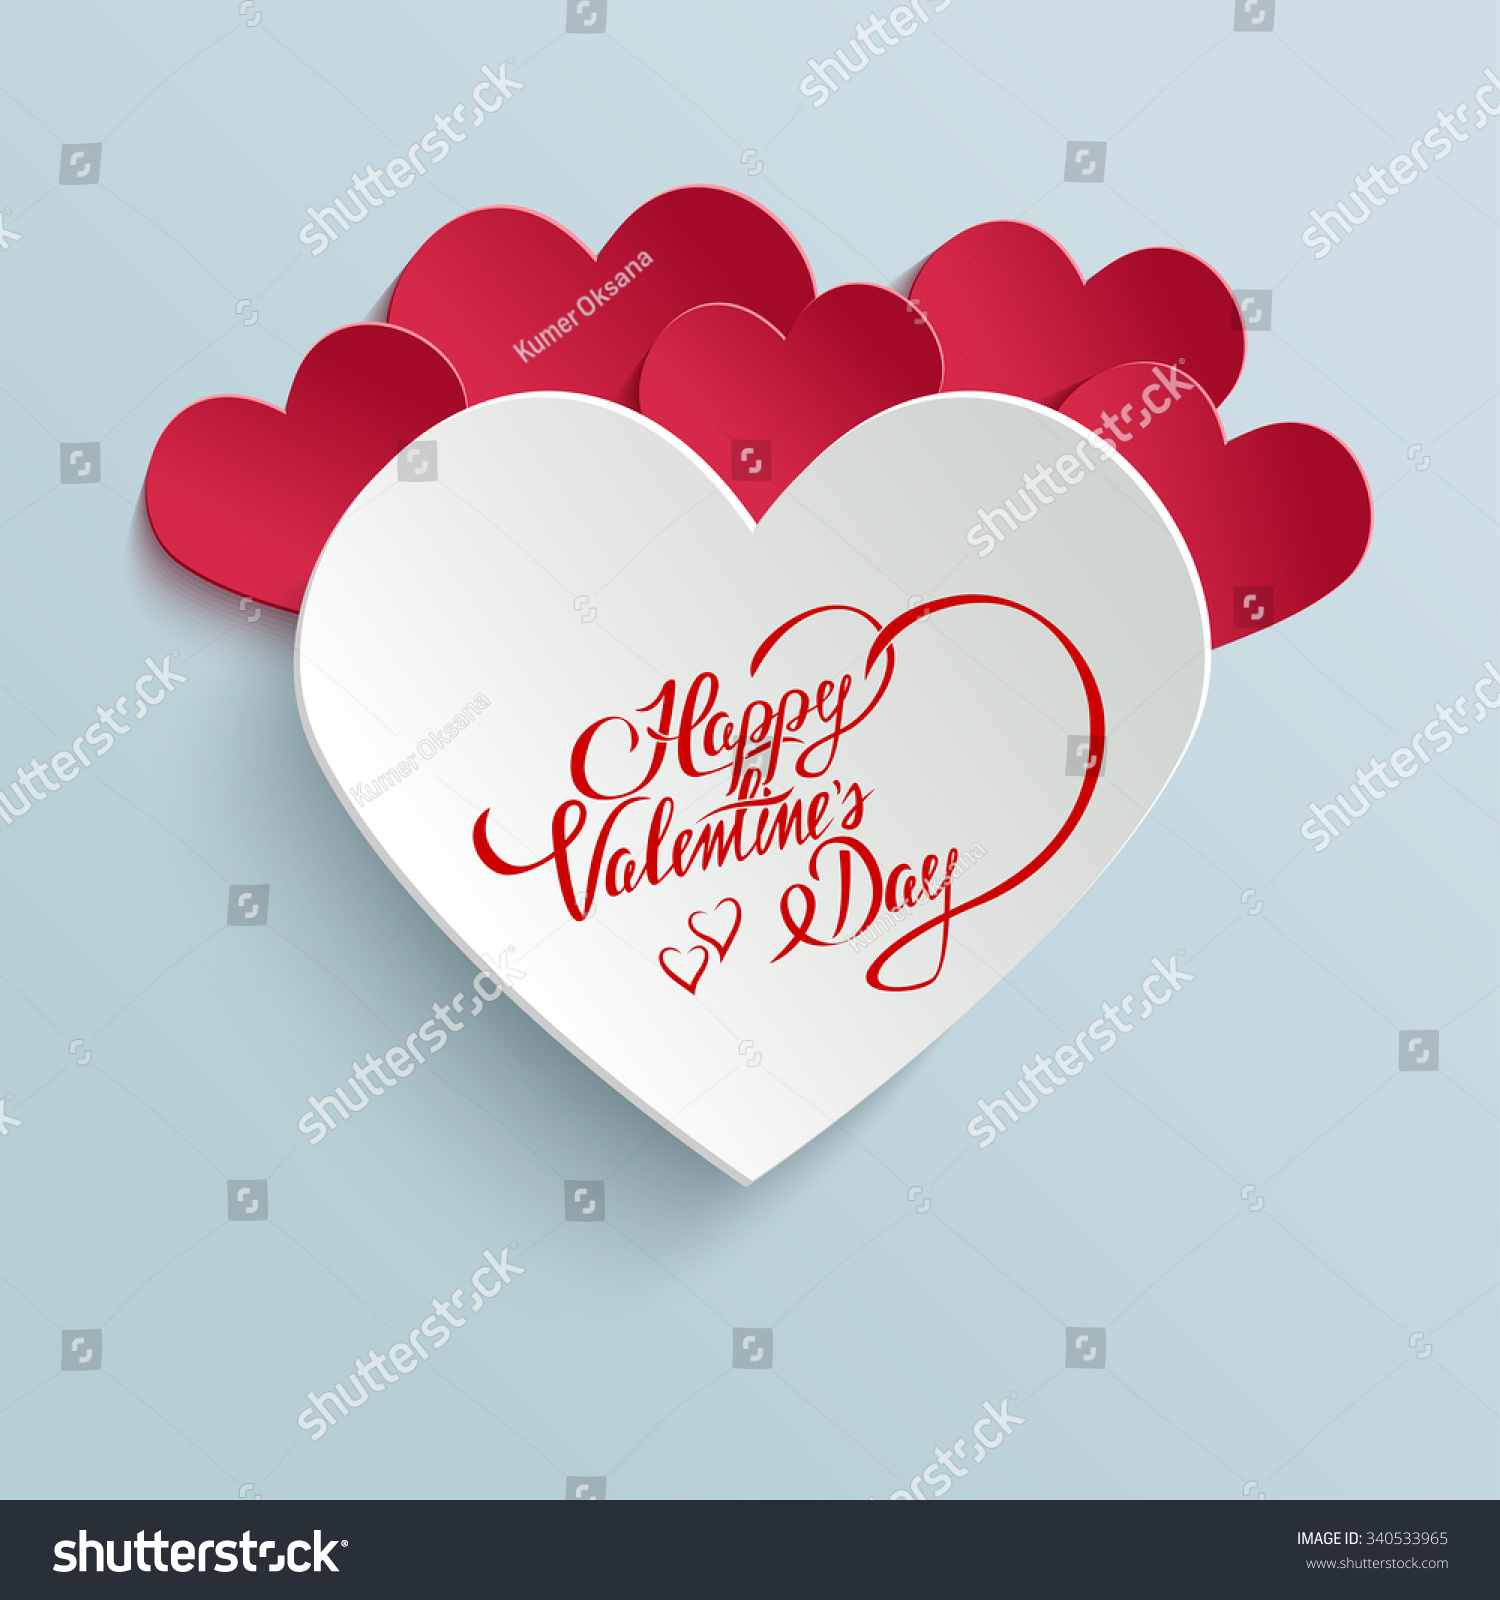 Happy Valentines Day Hand Lettering Greeting Stock